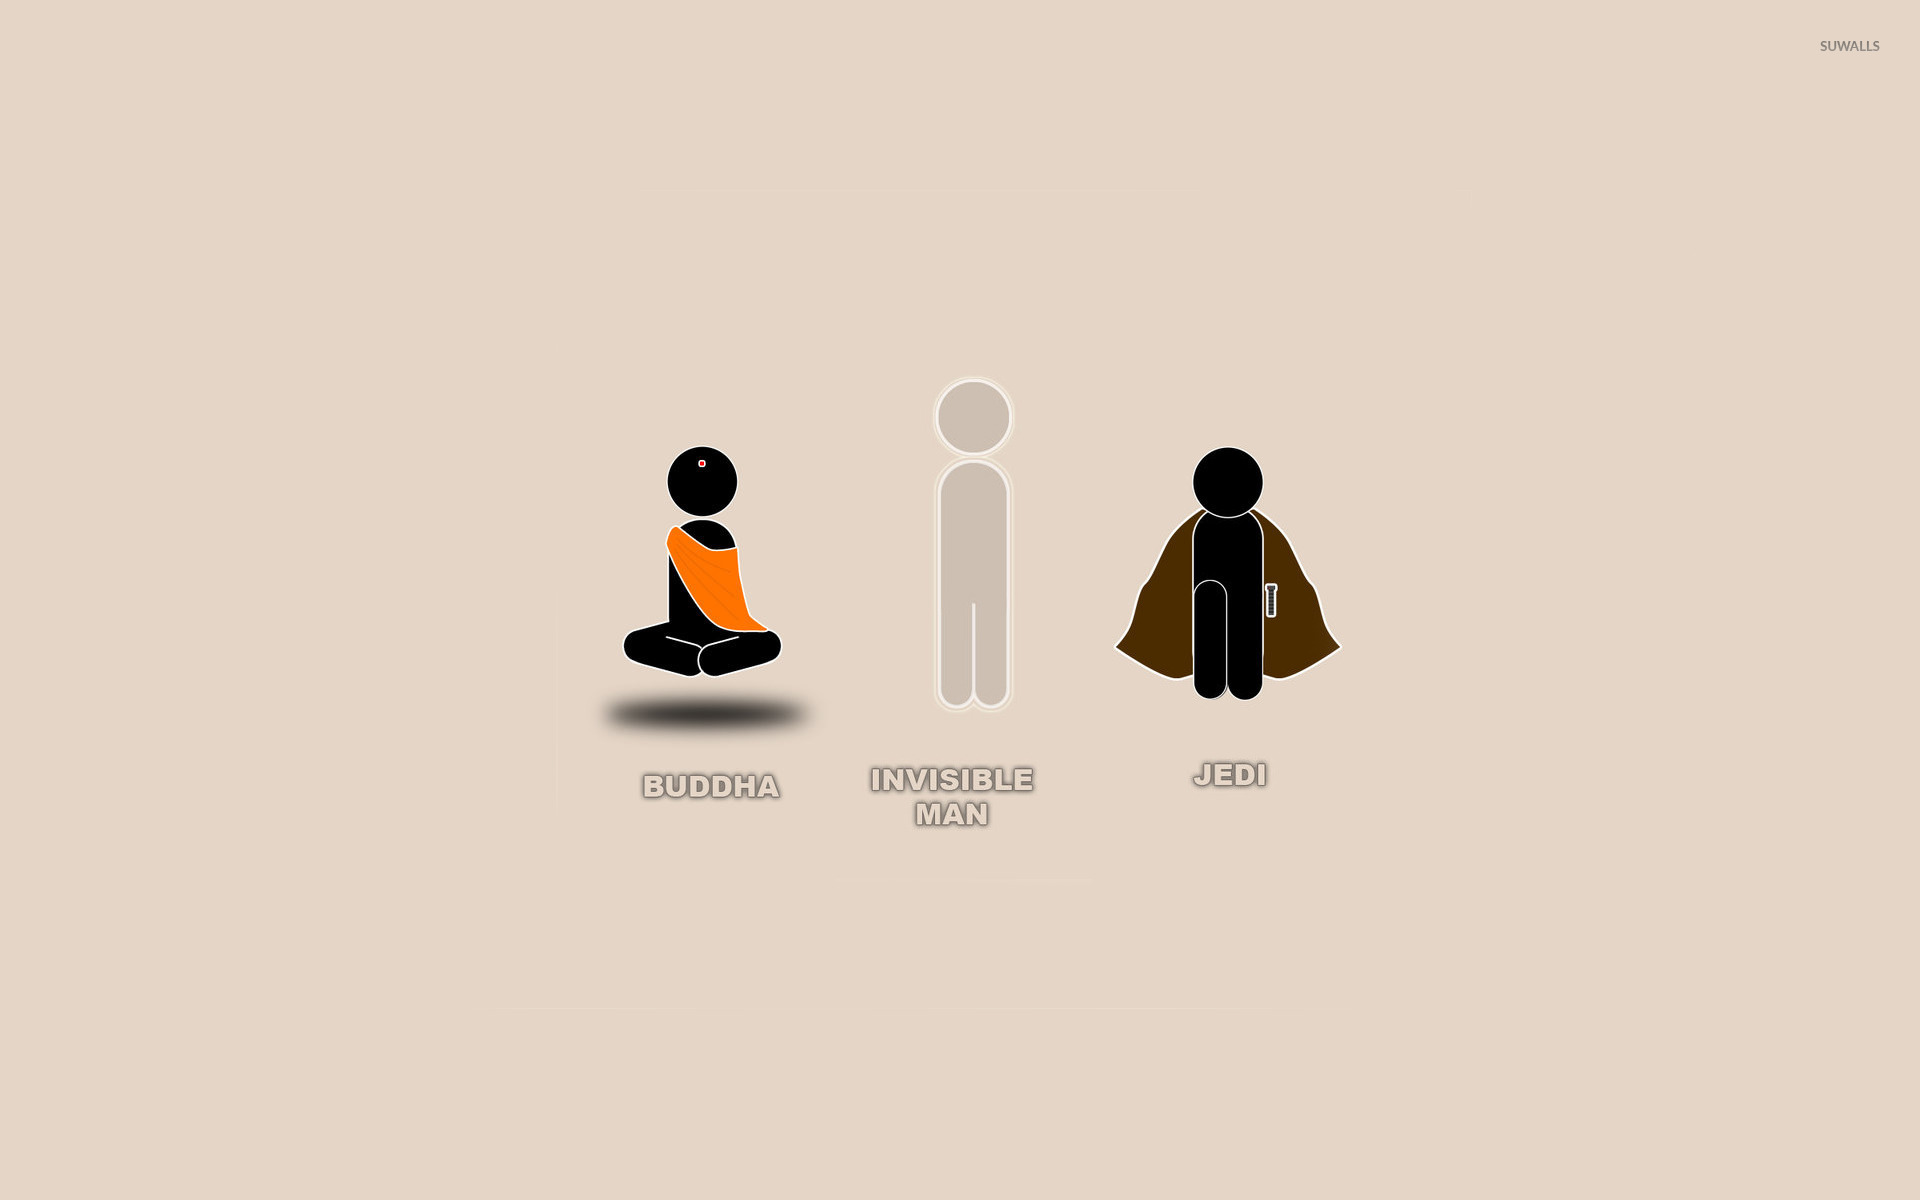 buddha, invisible man and jedi wallpaper - funny wallpapers - #15470